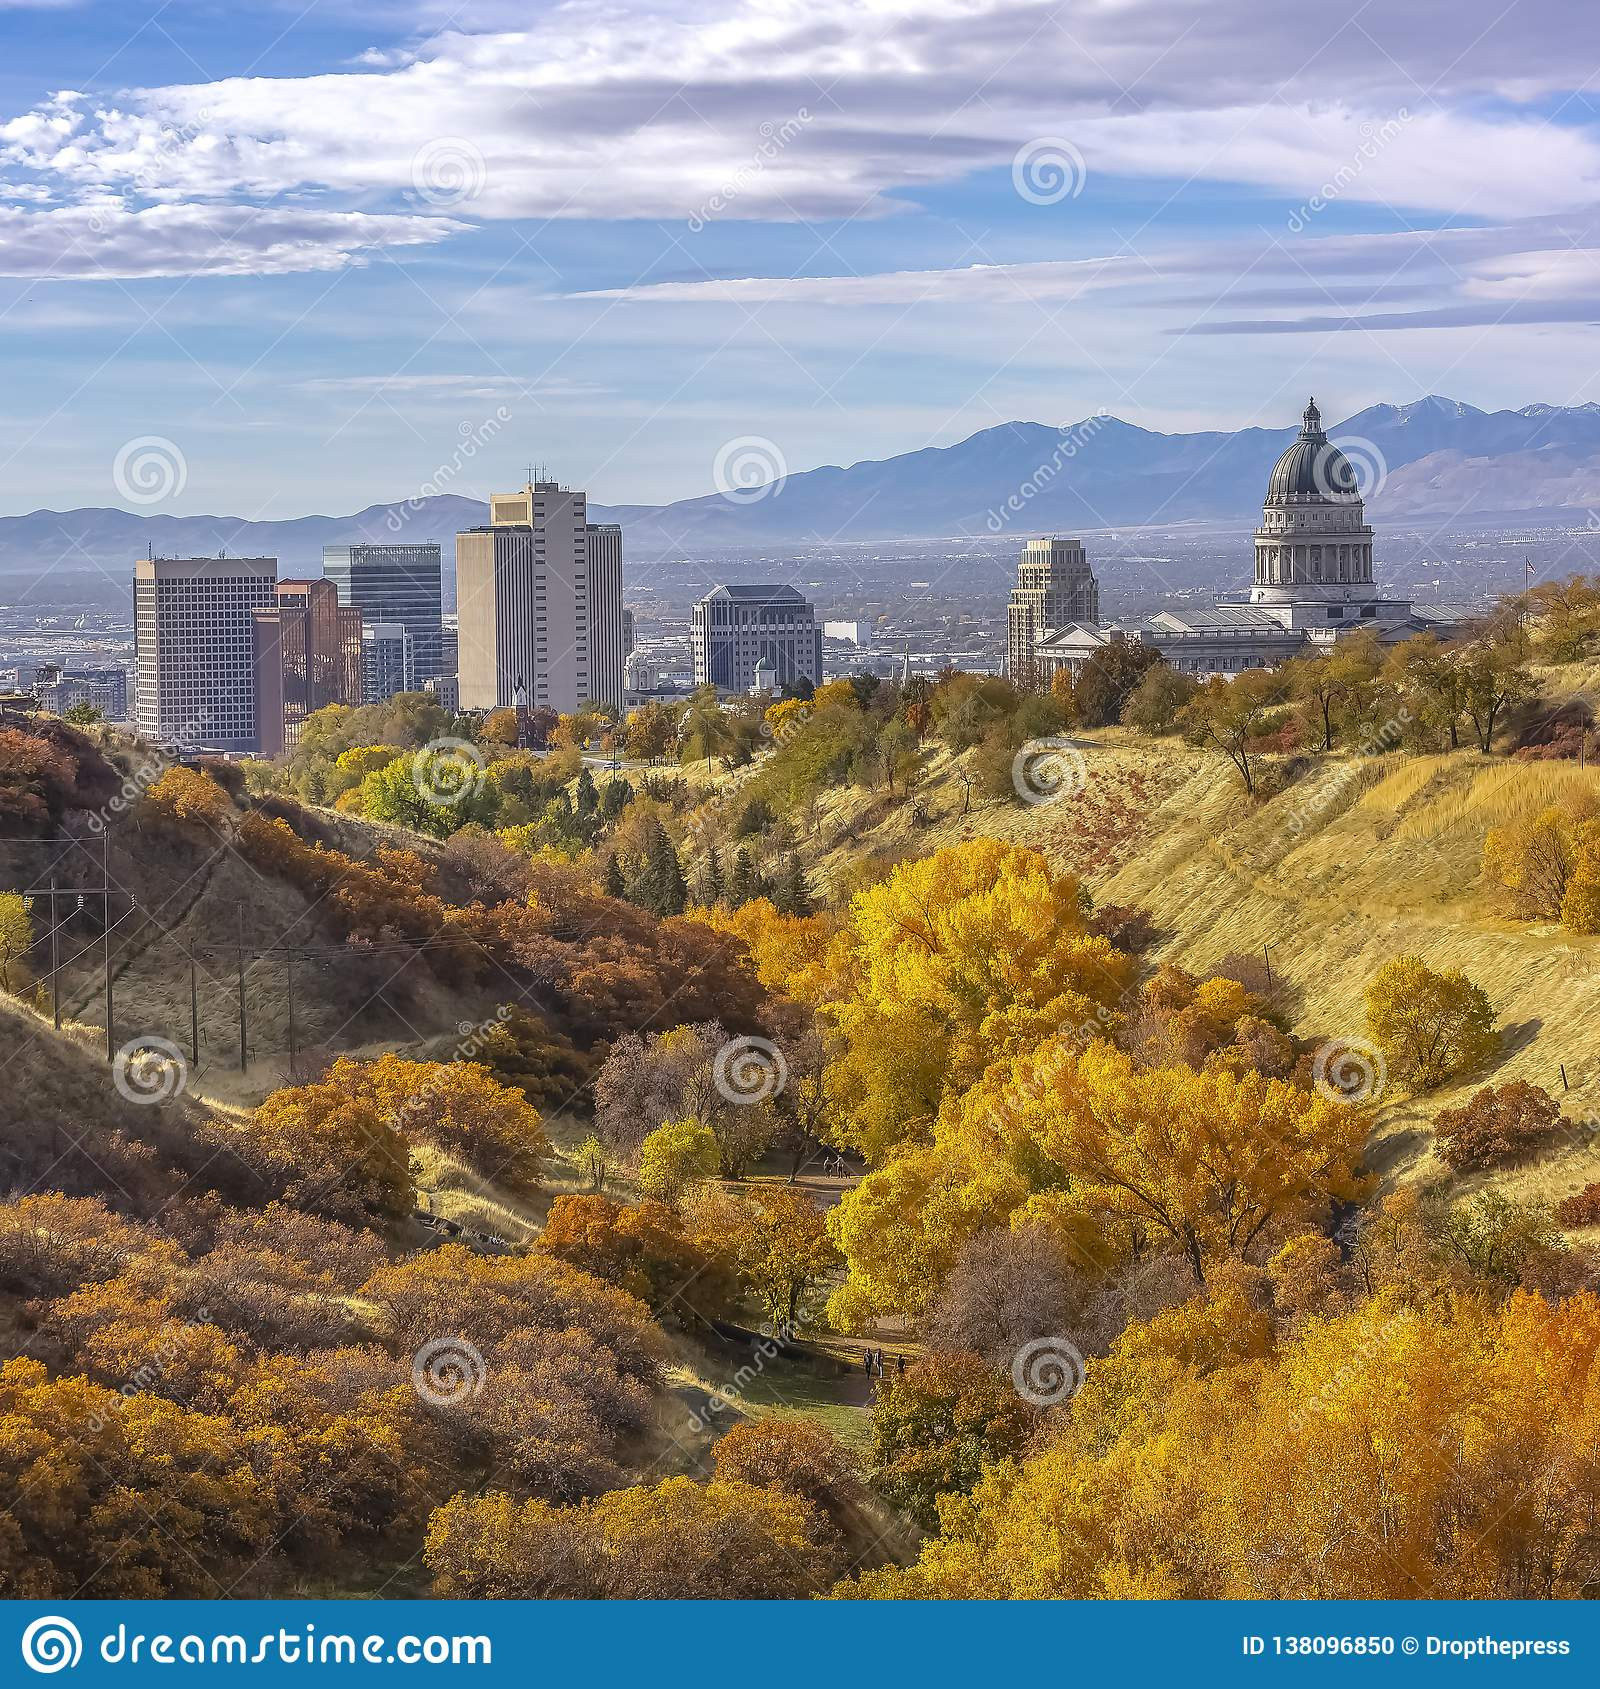 Salt Lake City Downtown Buildings: Fall Foliage And View Of Downtown Salt Lake City Stock